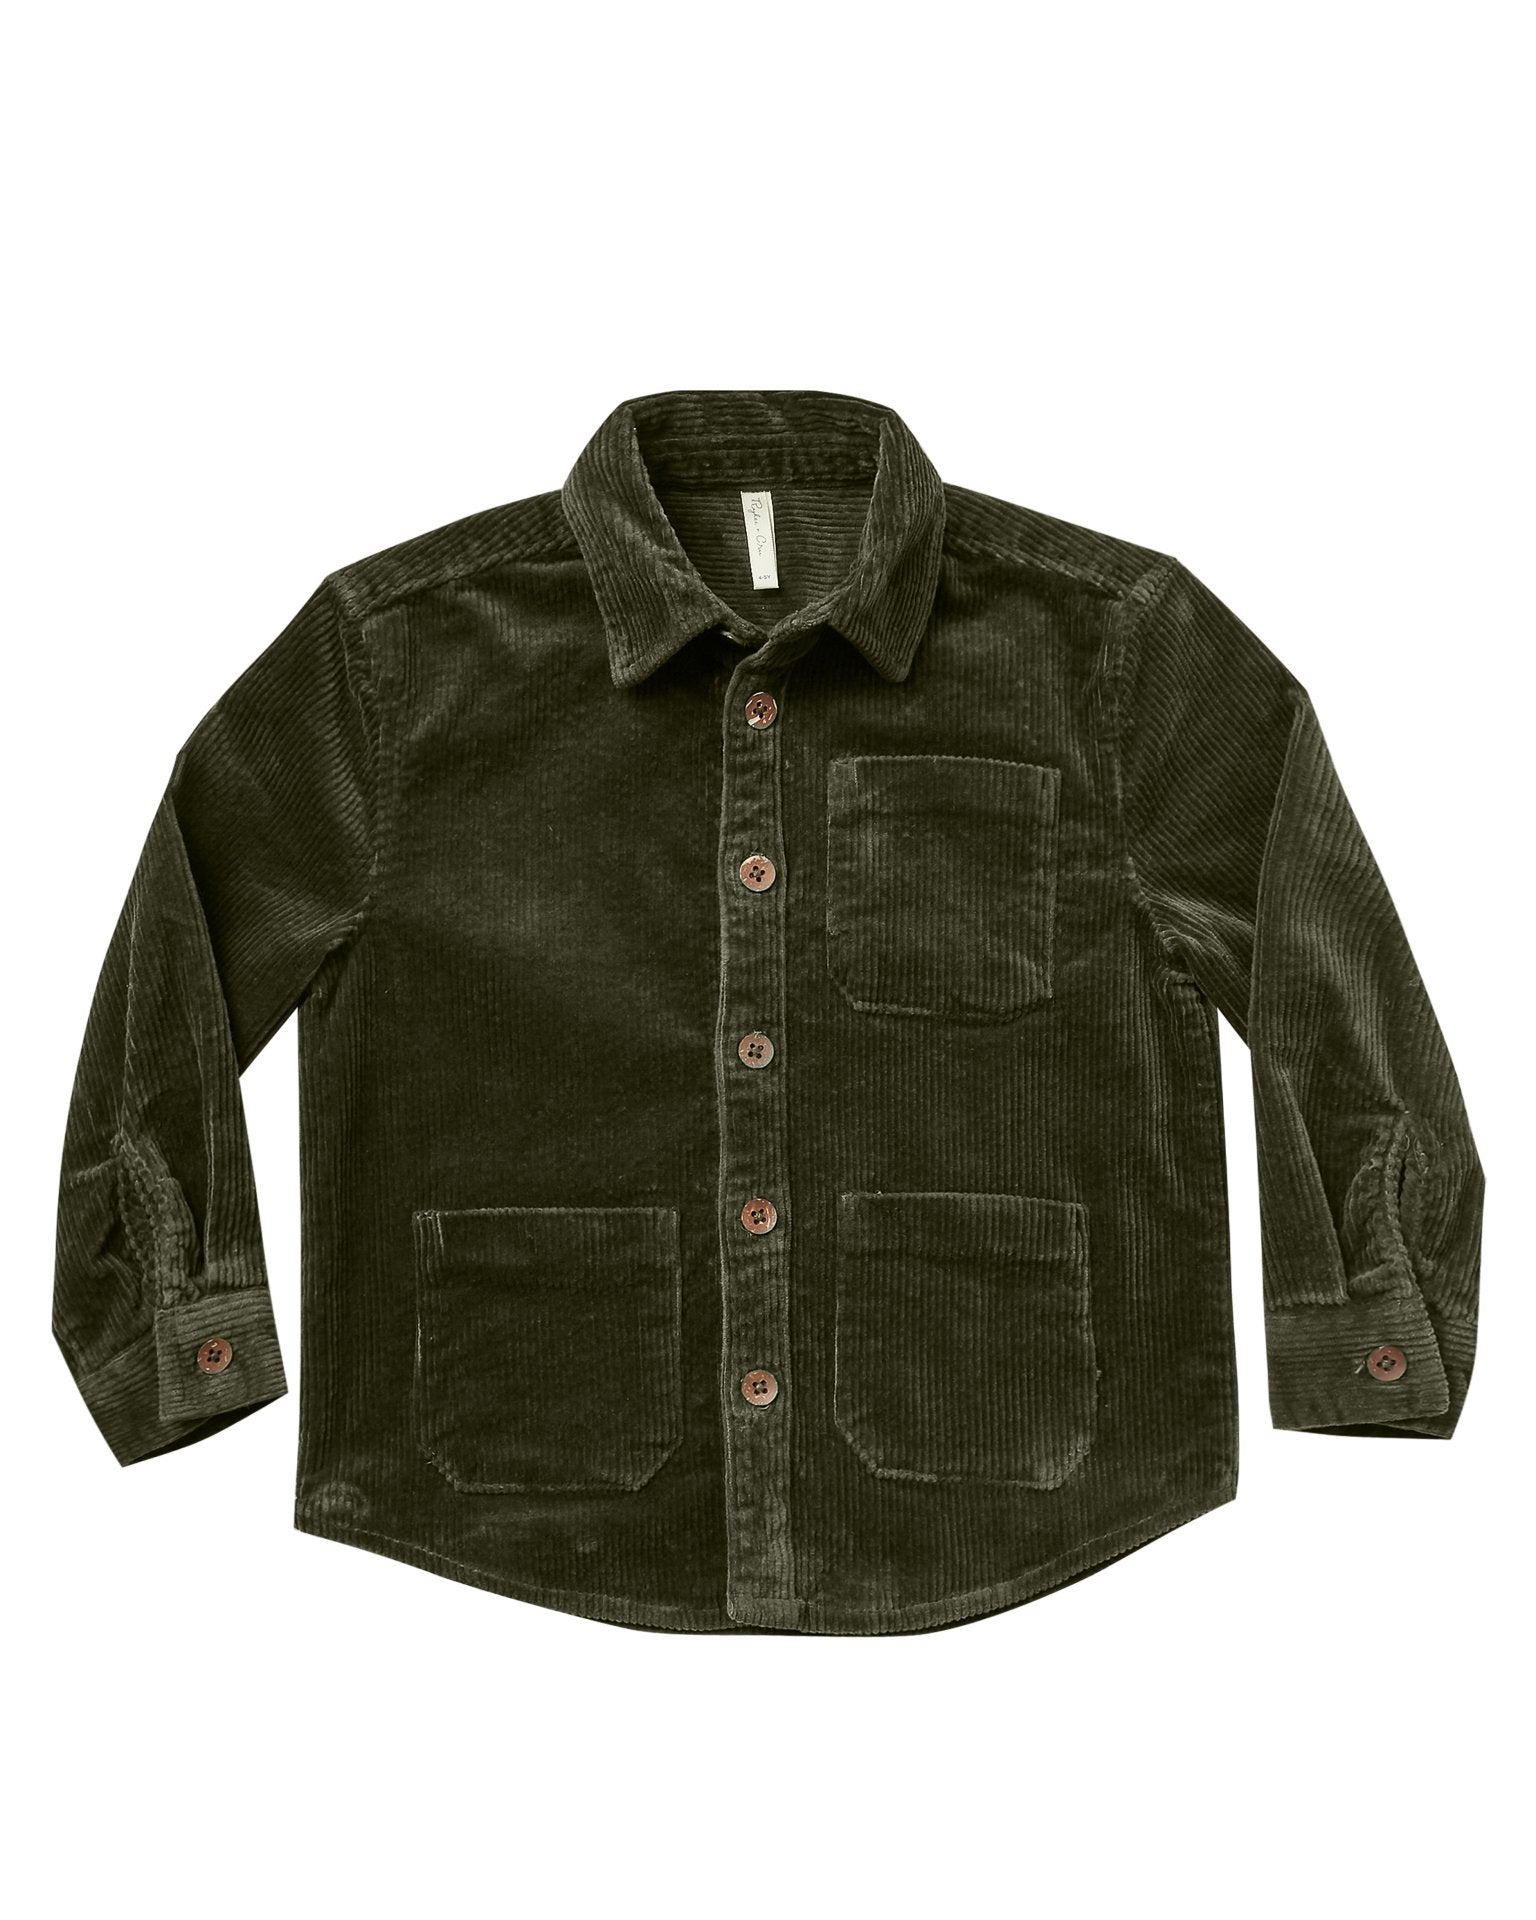 Little rylee + cru girl corduroy shirt in forest